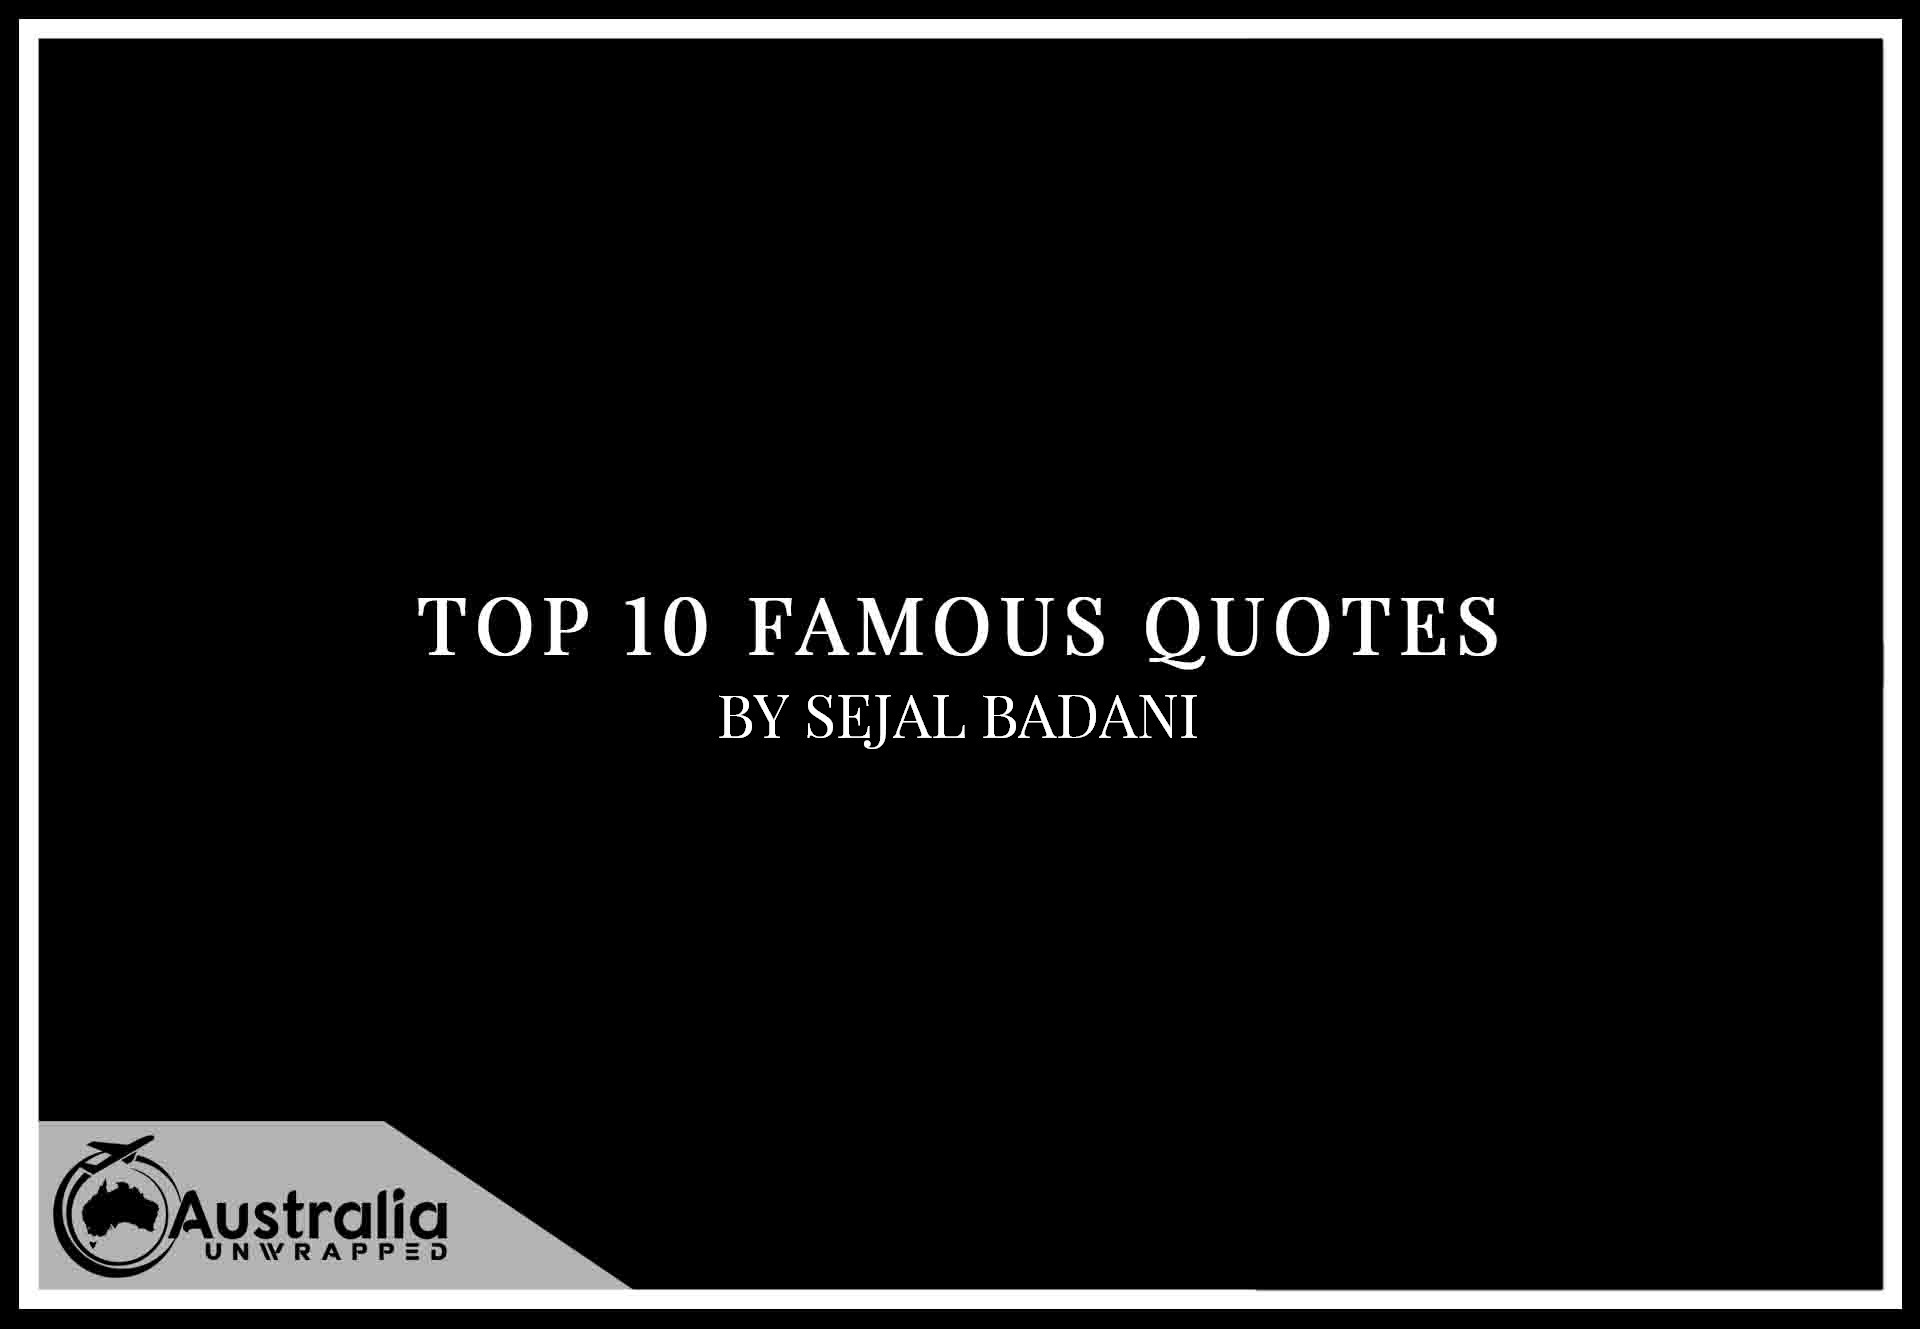 Top 10 Famous Quotes by Author Sejal Badani